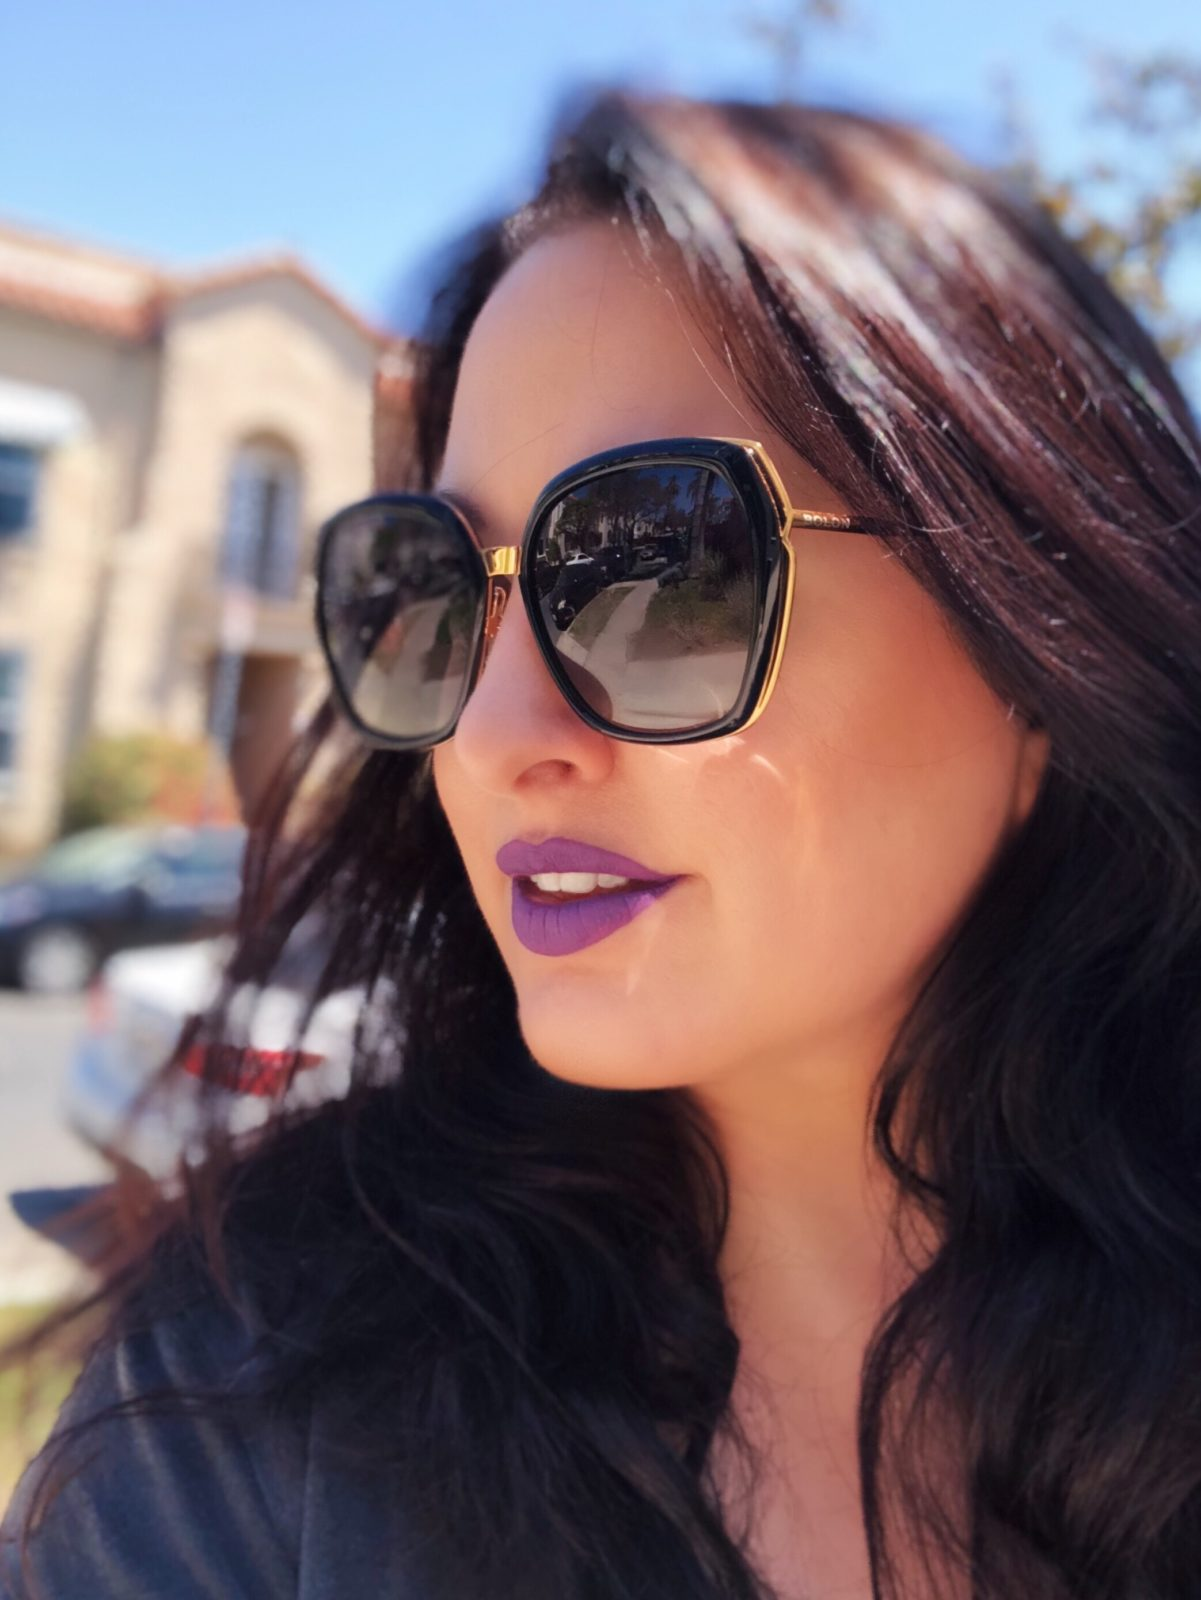 Bolon 6017 Sunglasses Review by Popular Los Angeles Lifestyle Blogger, My Beauty Bunny - My New Specs and Shades From Coastal Eyewear featured by popular Los Angeles style blogger, My Beauty Bunny